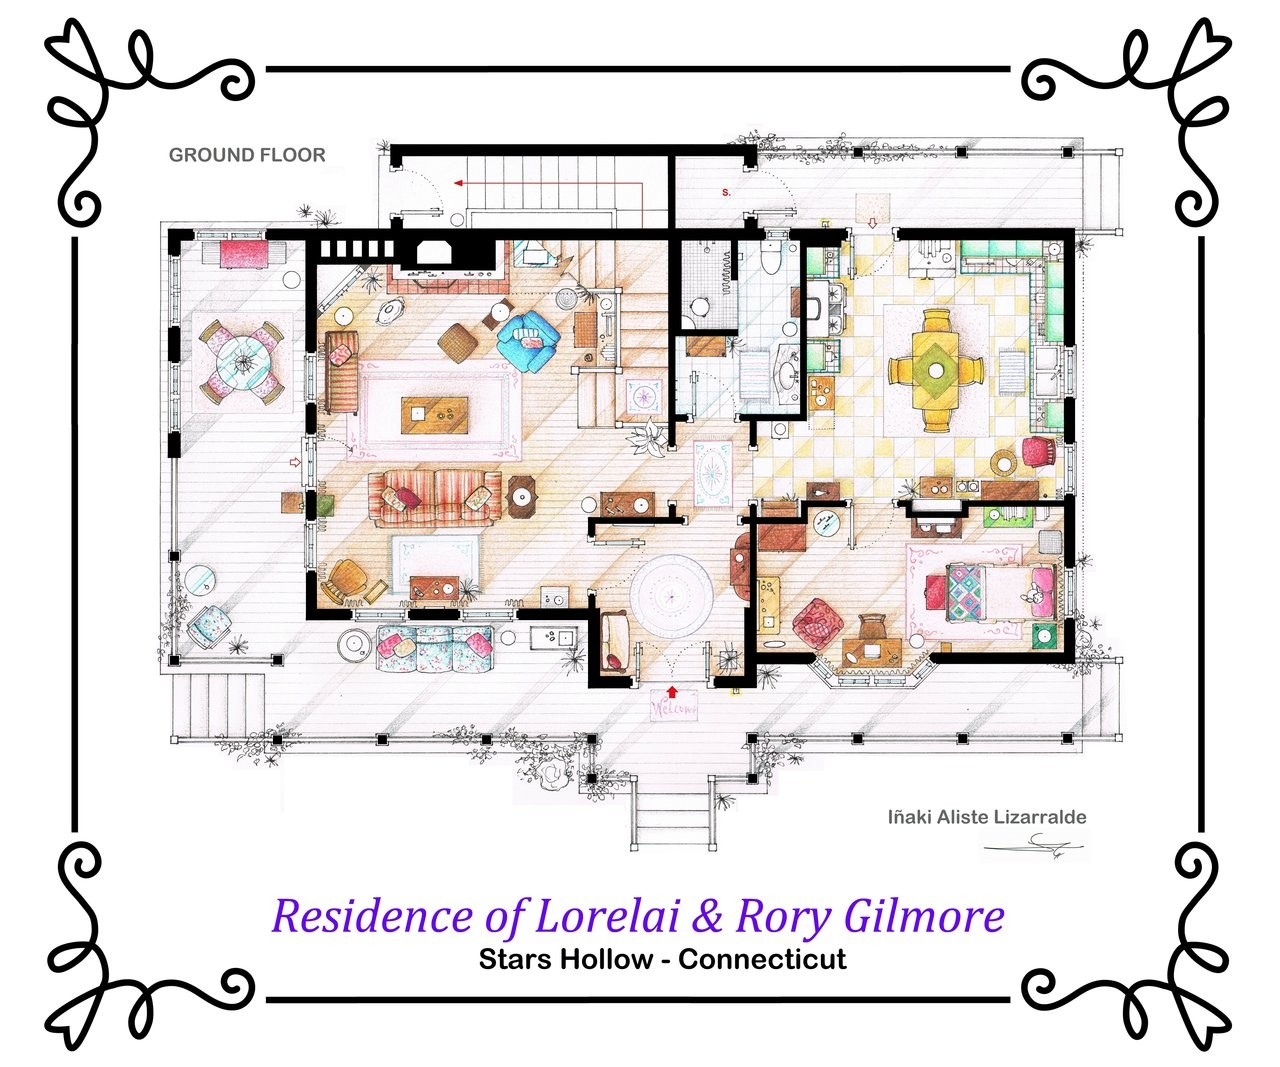 house_of_lorelai_and_rory_gilmore___ground_floor_by_nikneuk-d5to1q3.jpg